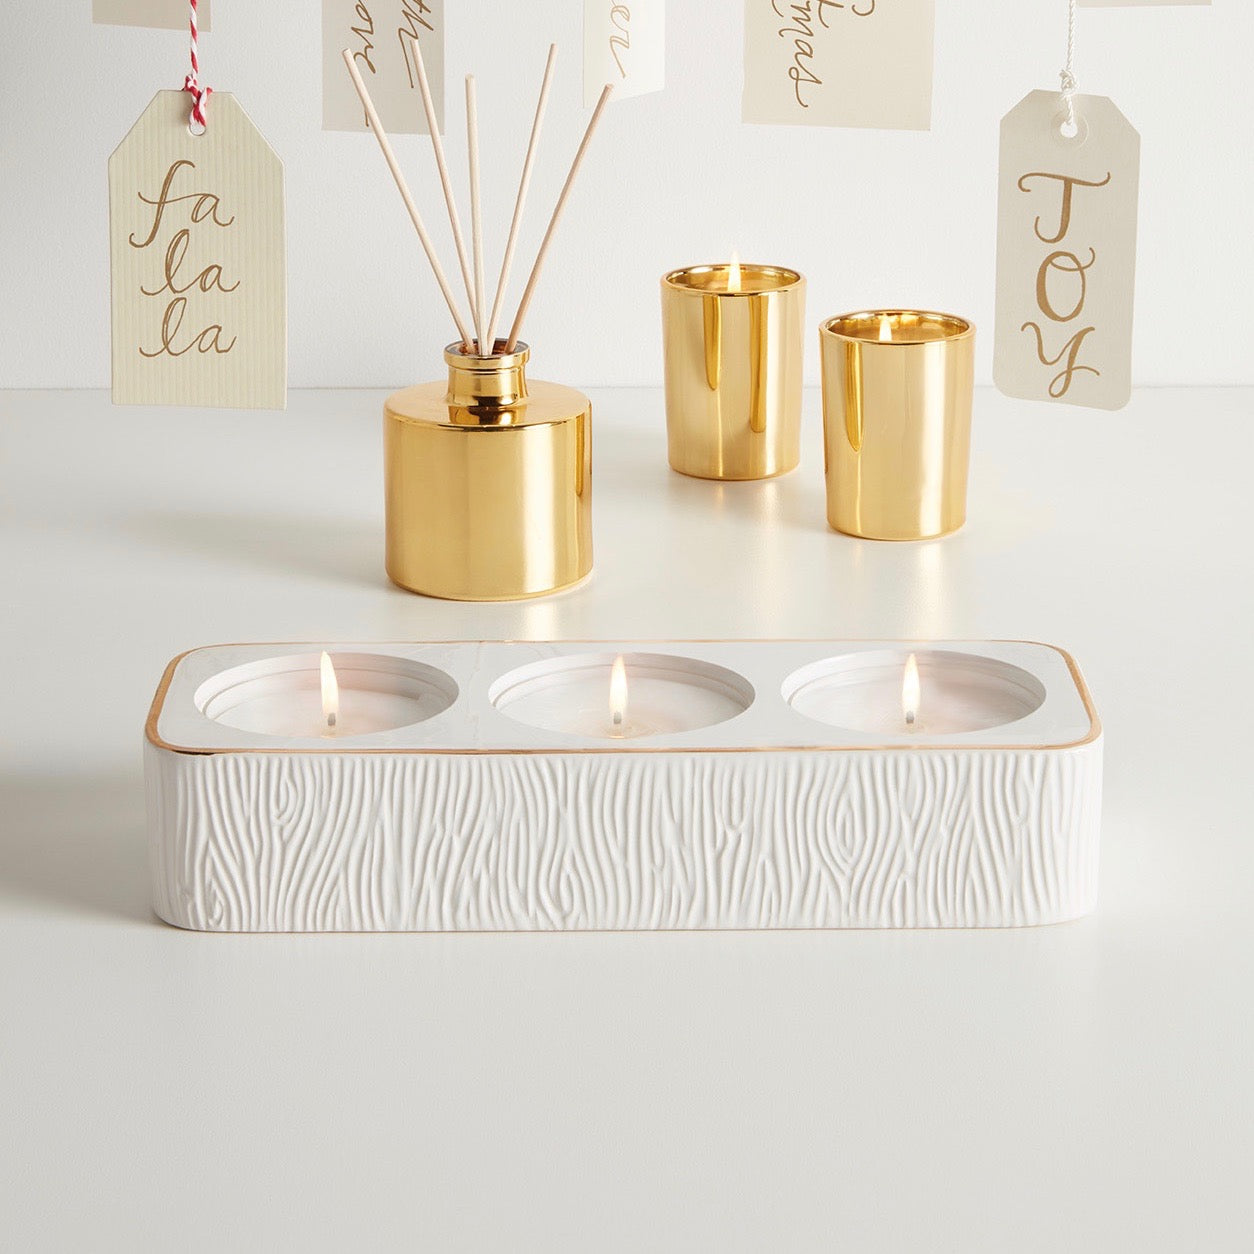 Thymes Frasier Fir Gilded Collection